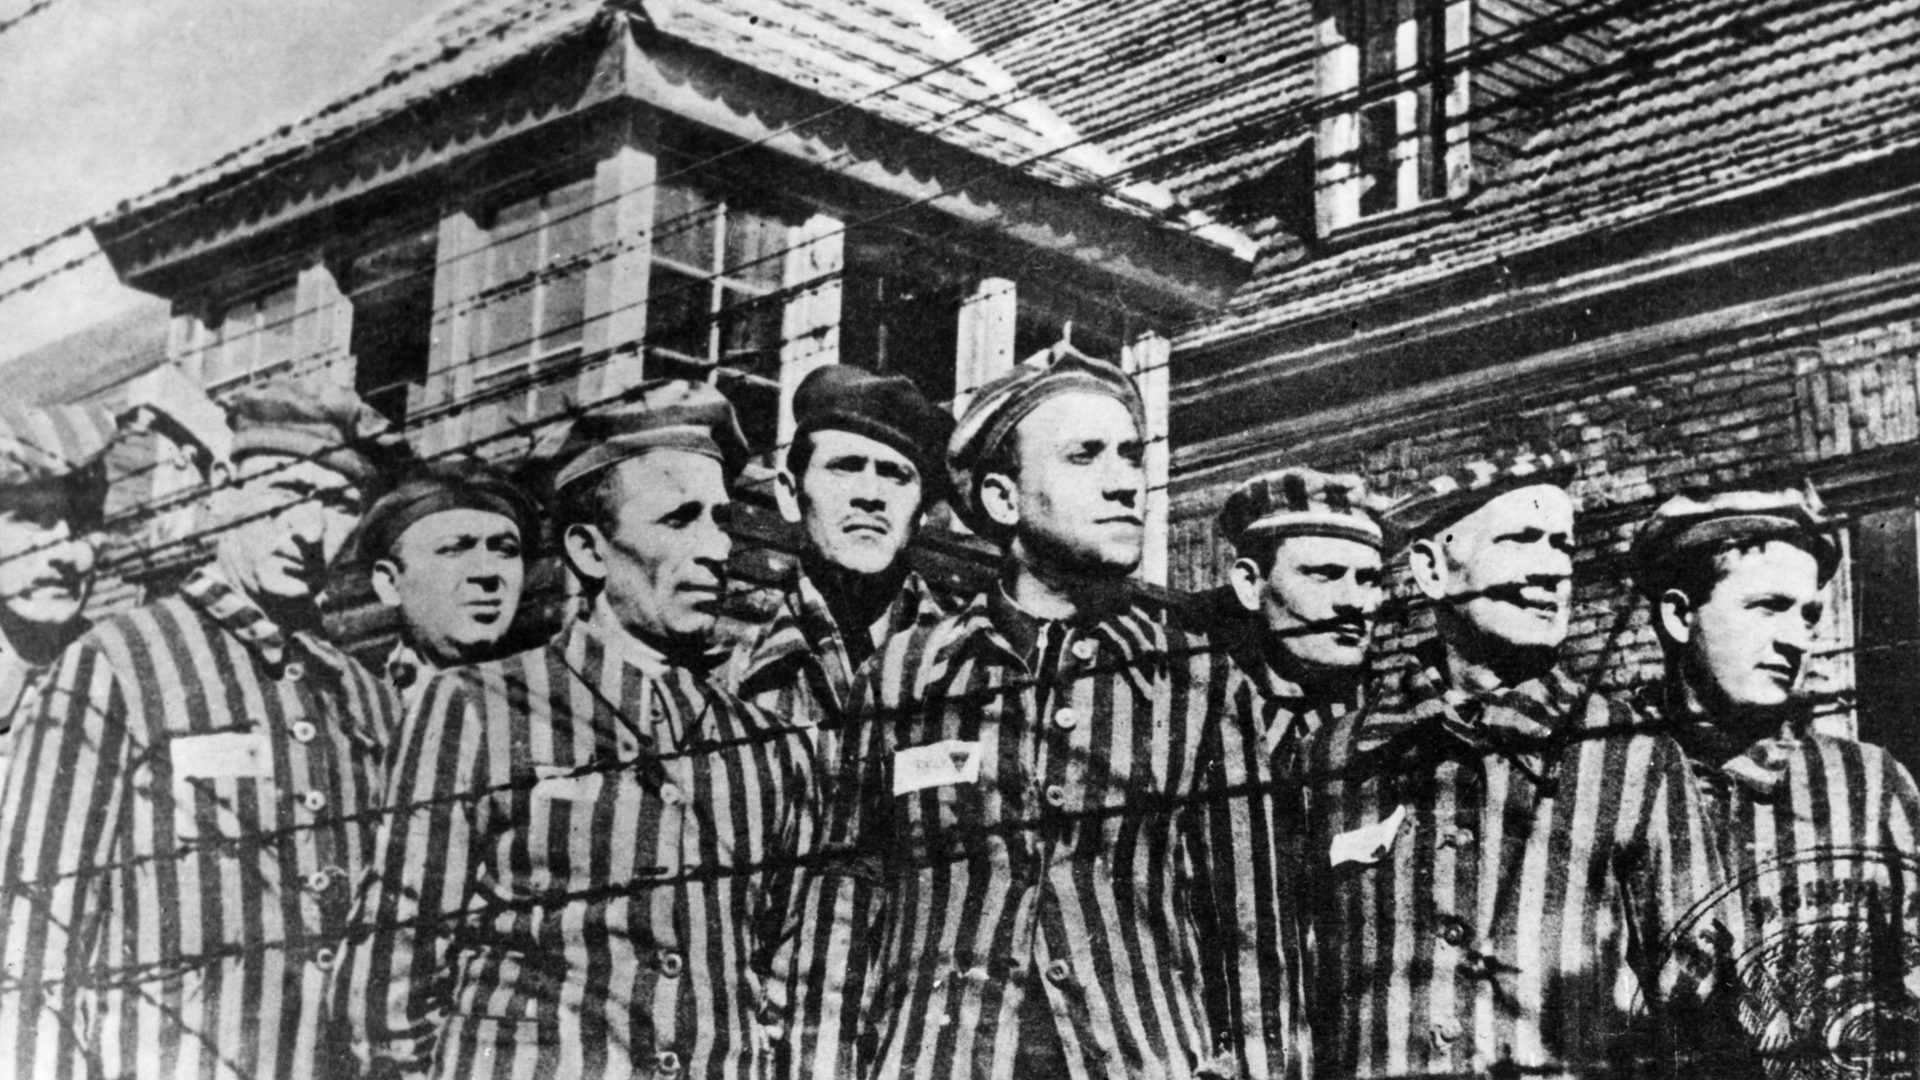 Some of the few surviving prisoners of Auschwitz concentration camp in Poland, 1945. (Credit: Sovfoto/UIG via Getty Images)